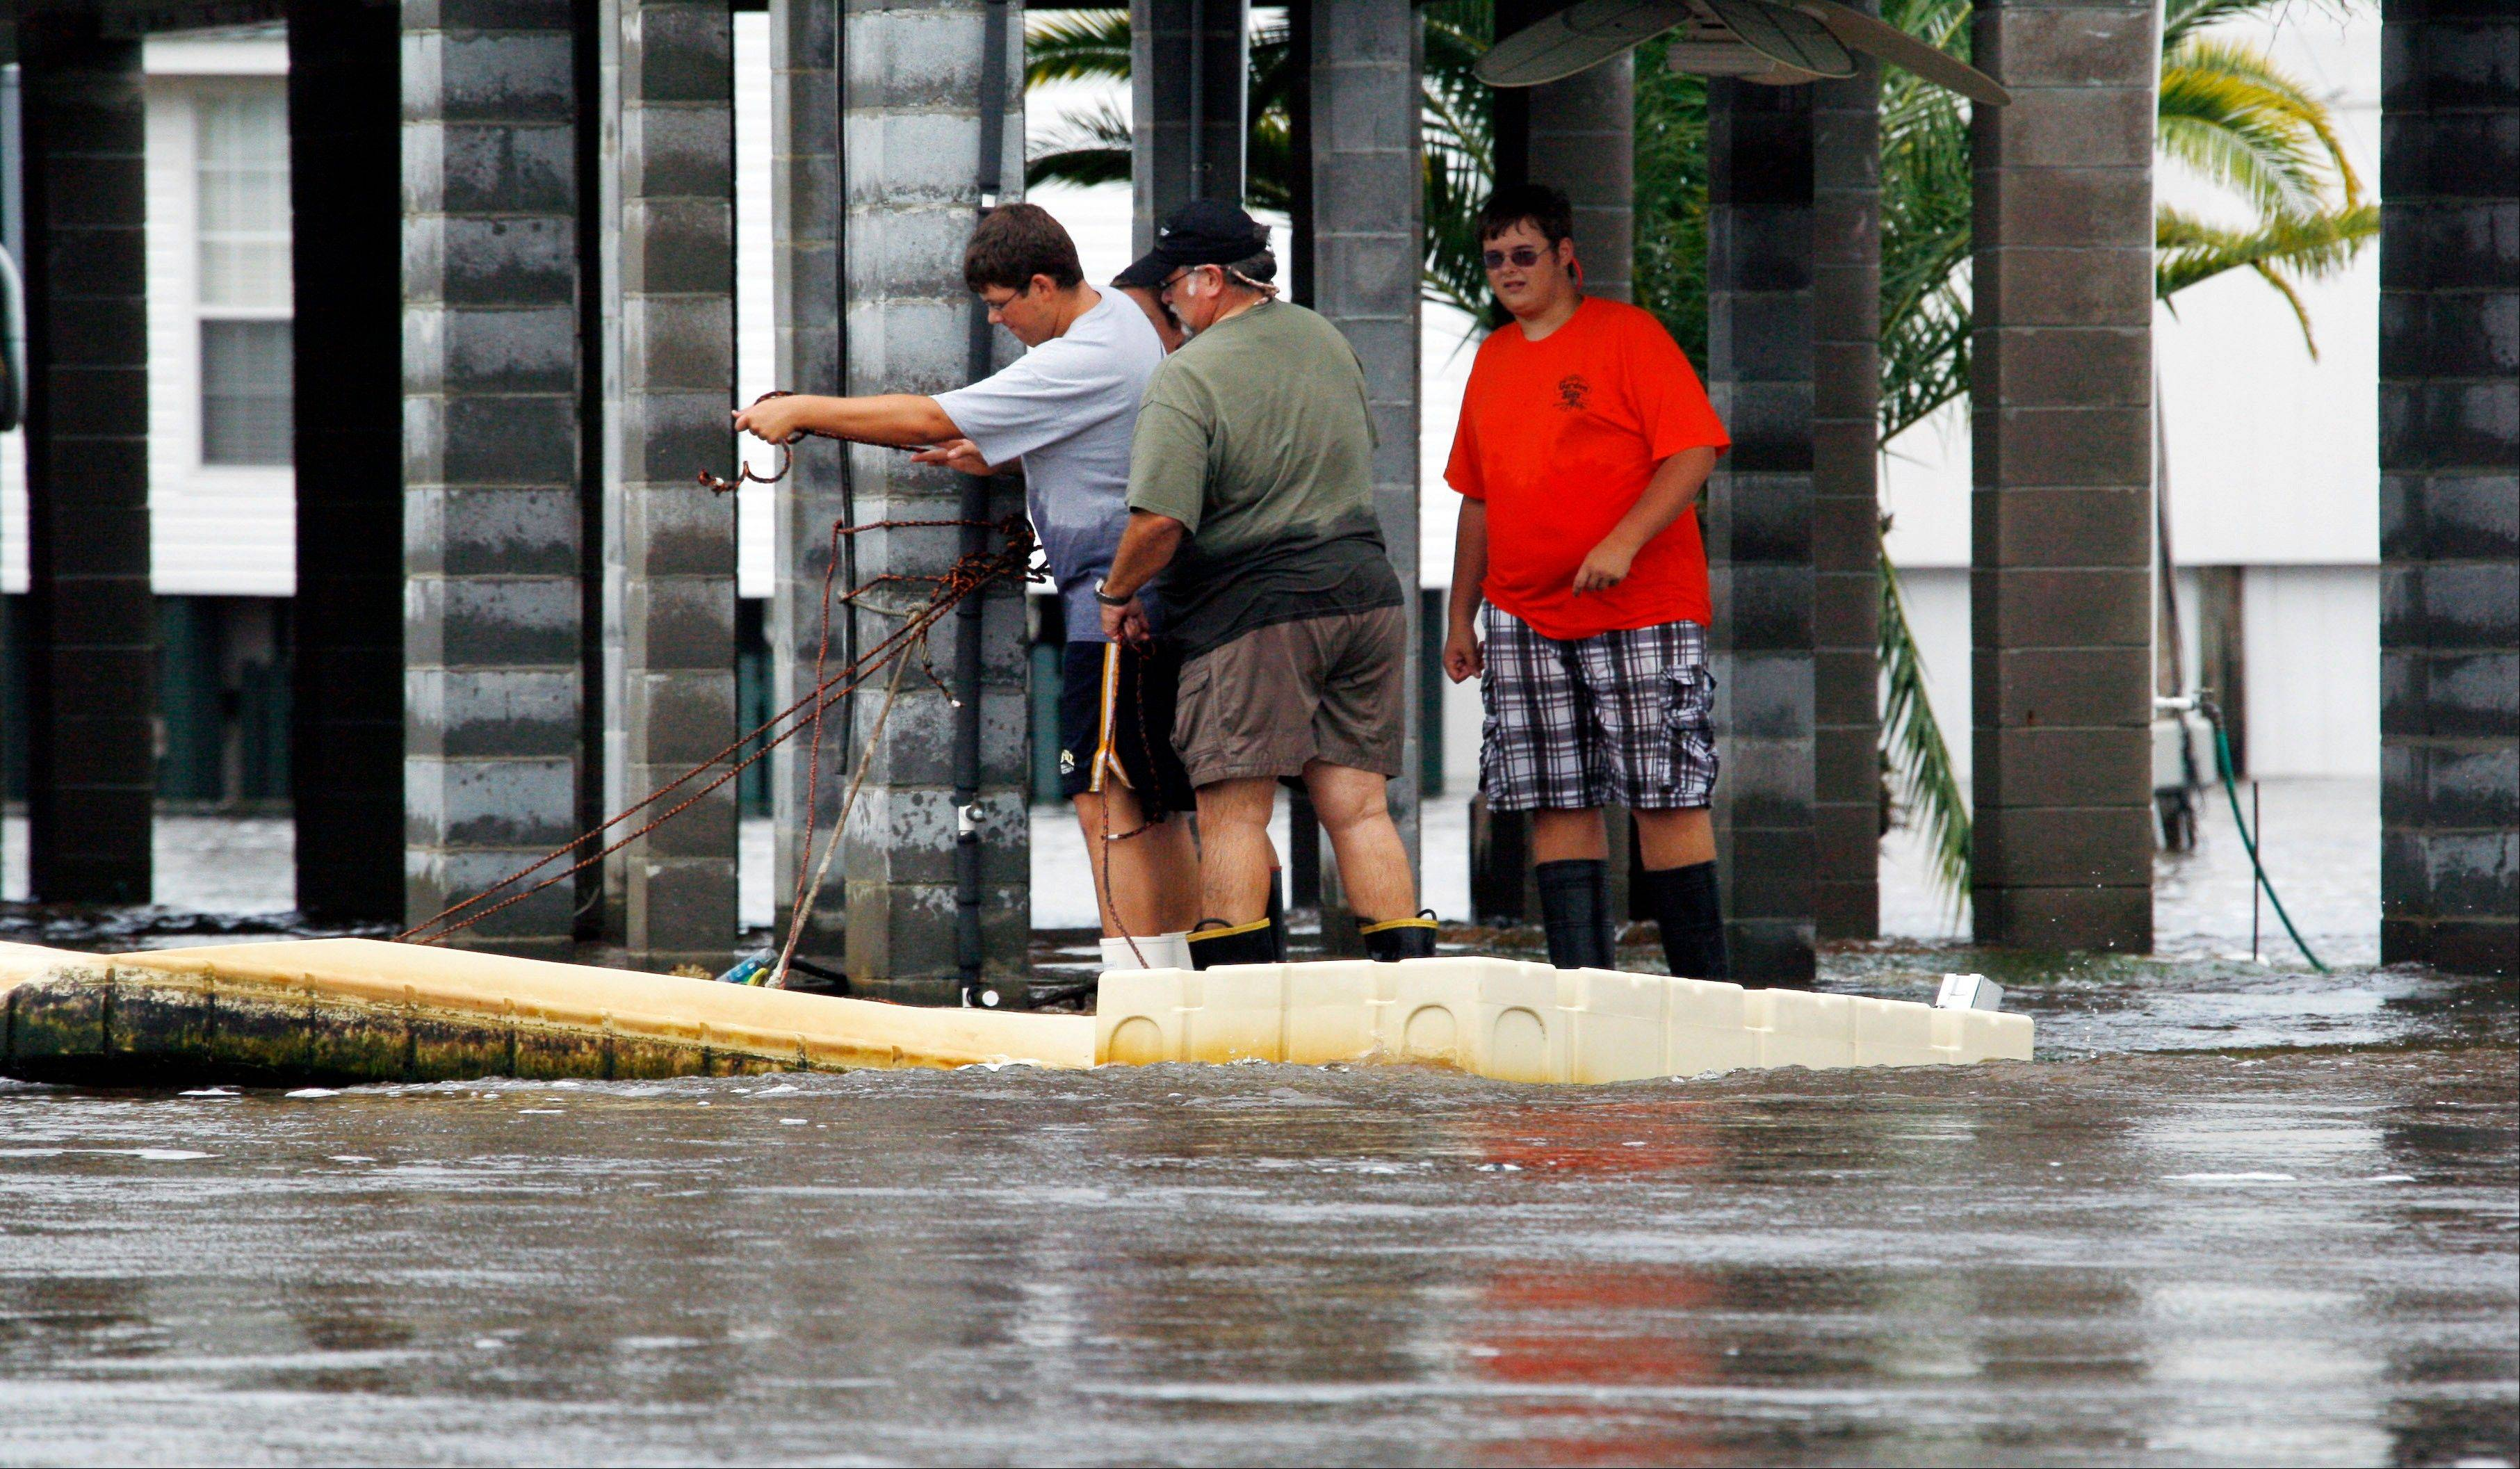 Homeowners tie a ramp Friday as several feet of moving water surround houses built on stilts on the Jourdan River in Kiln, Miss.